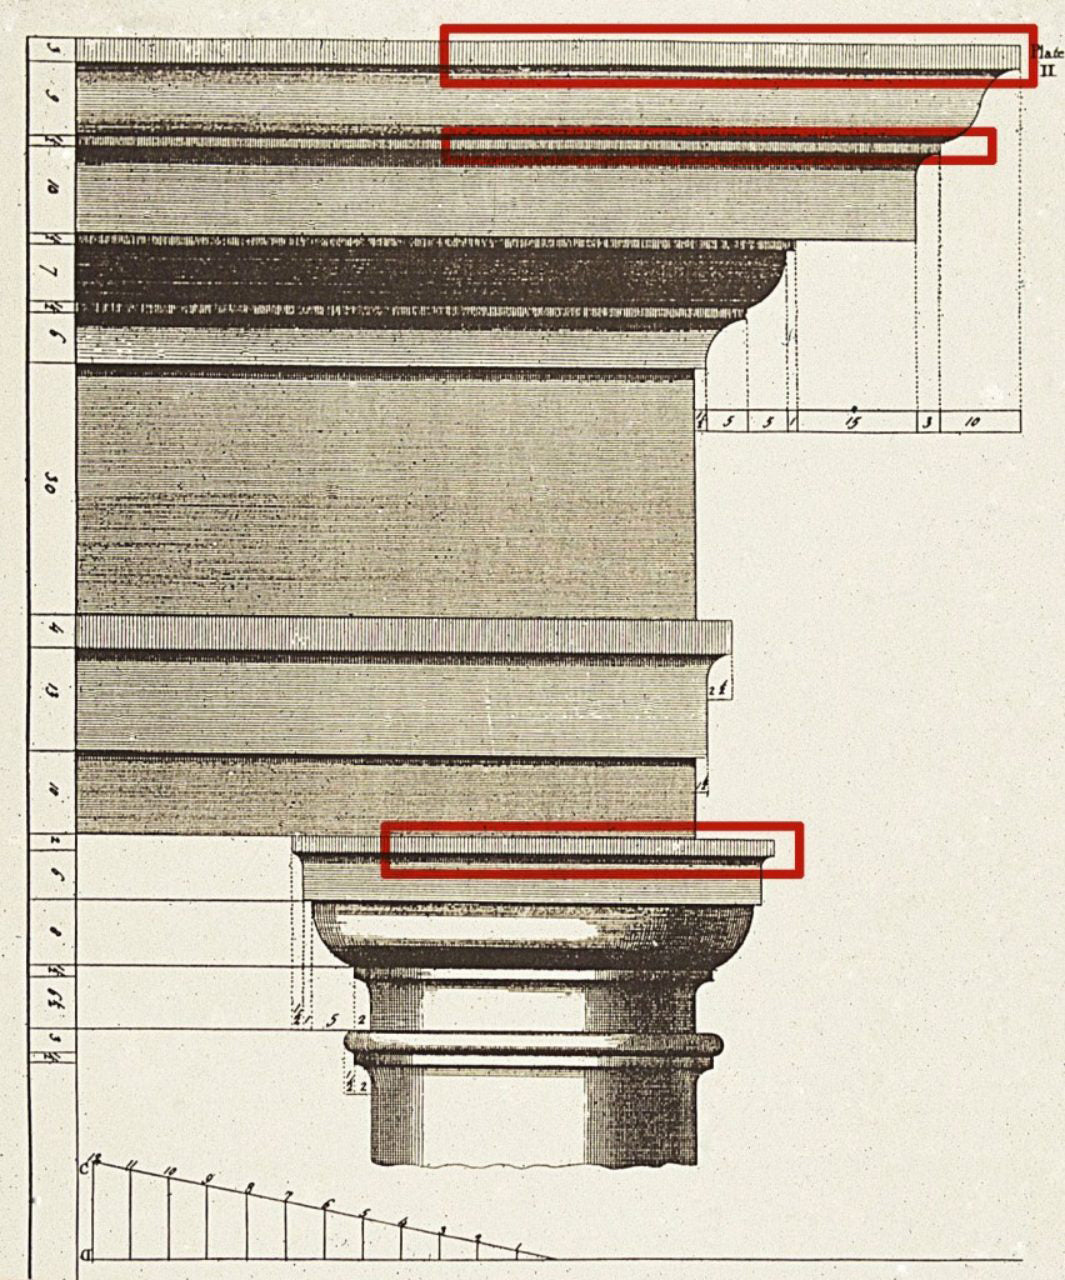 Fillet Classical Definition - Illustrated Glossary of Architectural Terms by Brockwell Incorporated